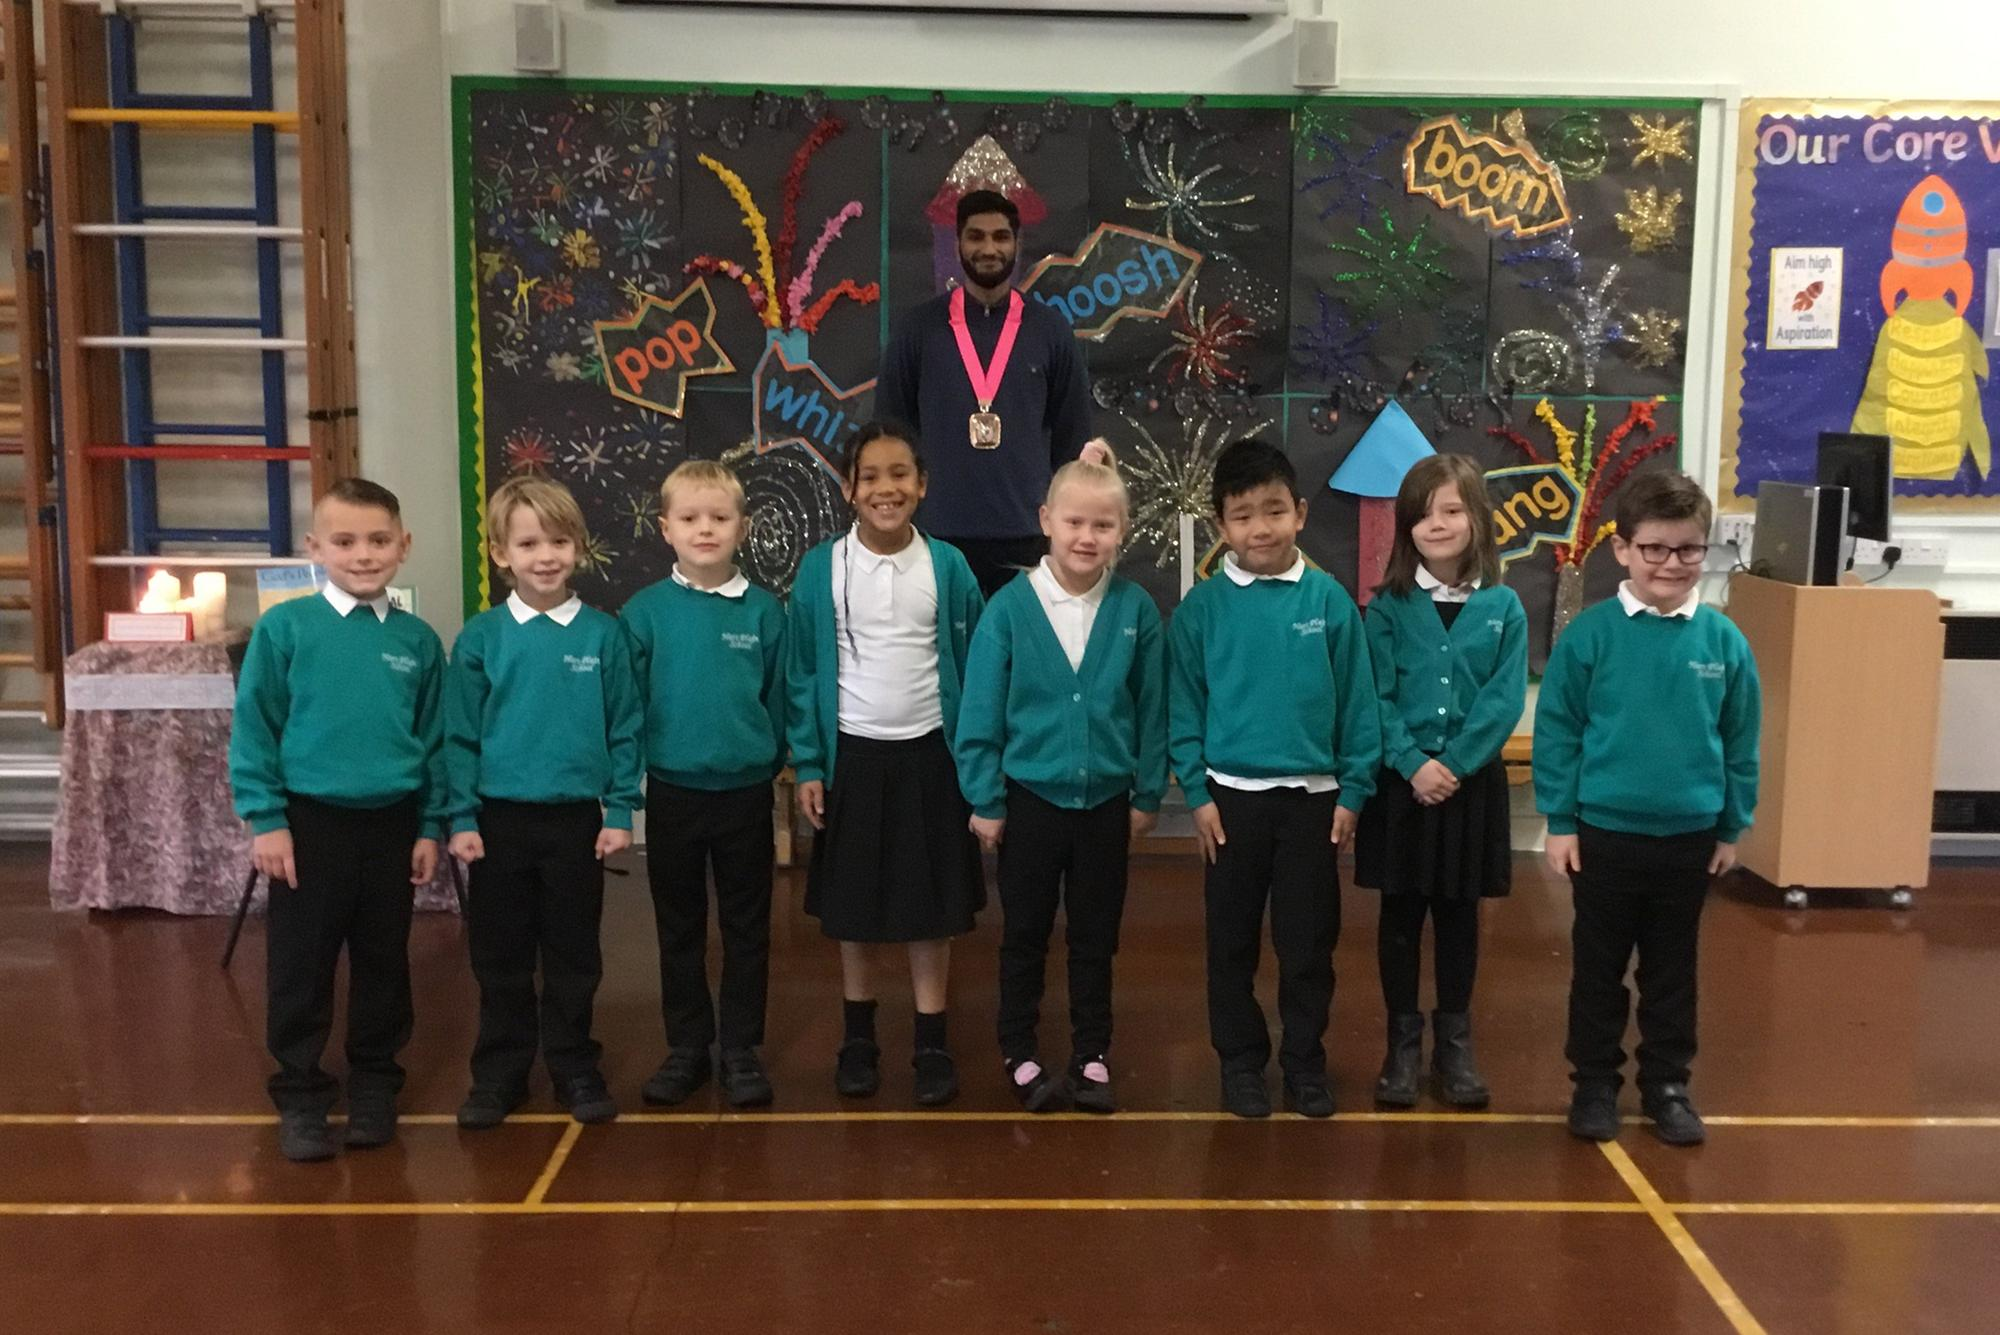 Pupils visited by mayor to discuss equality and diversity during school's Black Lives Matter week